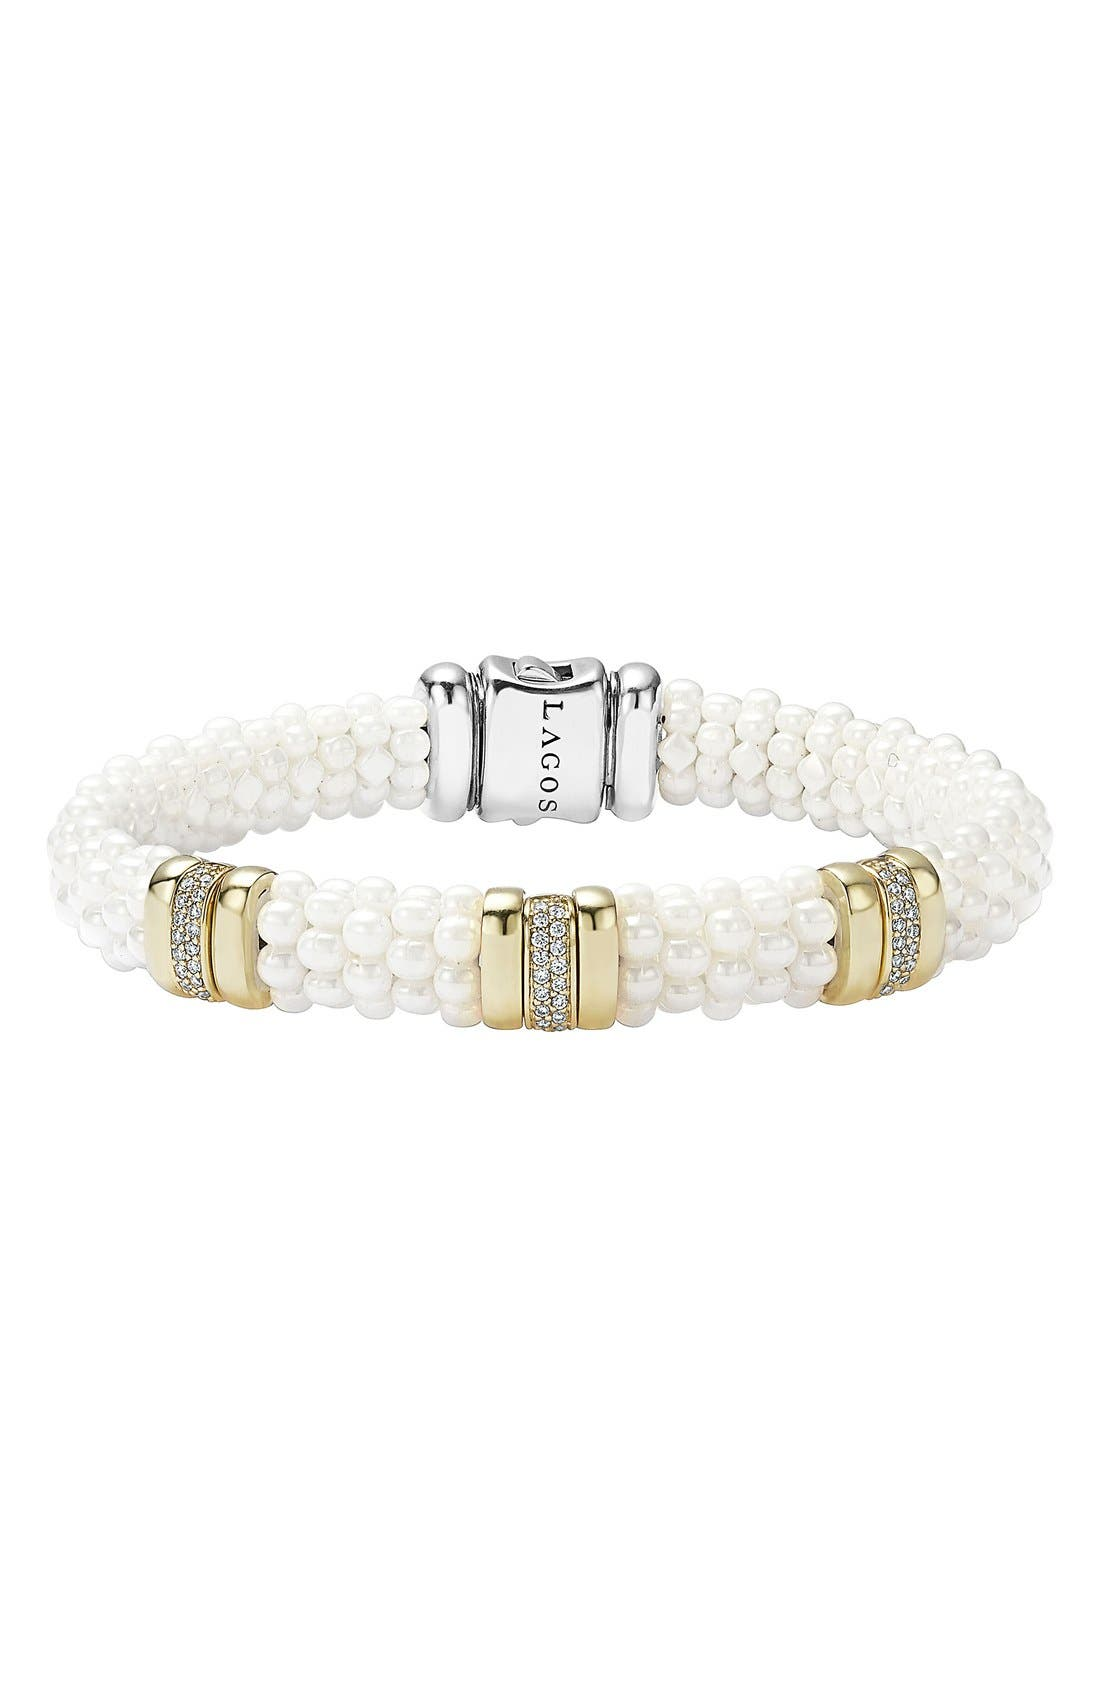 'White Caviar' Three Station Bracelet,                         Main,                         color, WHITE CAVIAR/ YELLOW GOLD